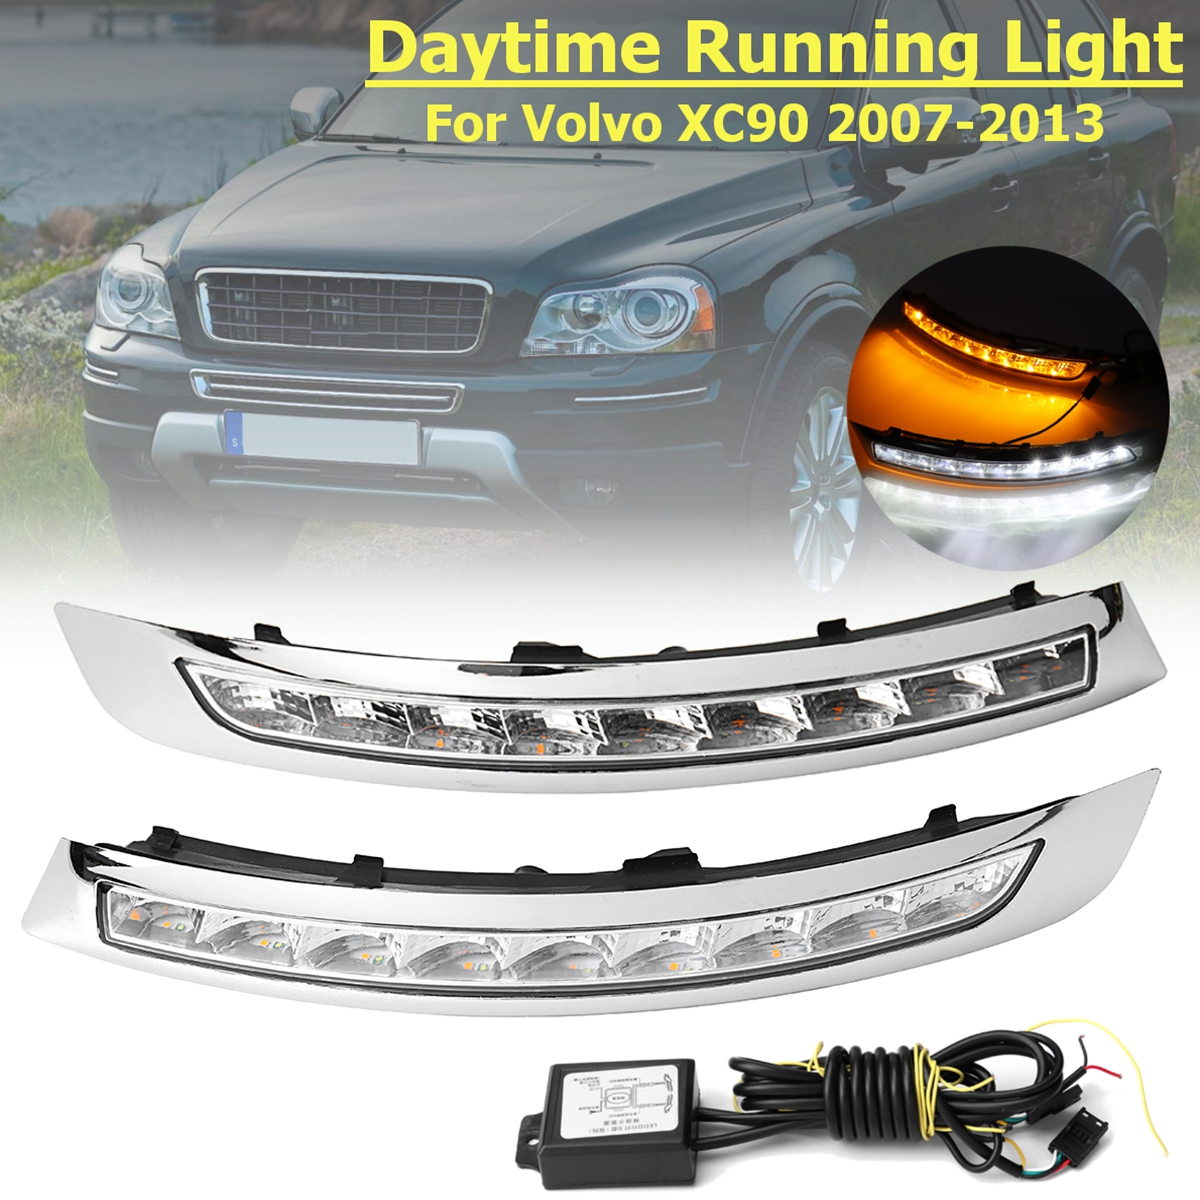 1 Pair LED DRL Daytime Running Lights Lamp Turning Signal fog lamp 12V 6000k Fog Lamp Frame Fog Light For Volvo XC90 2007~2013 купить недорого в Москве